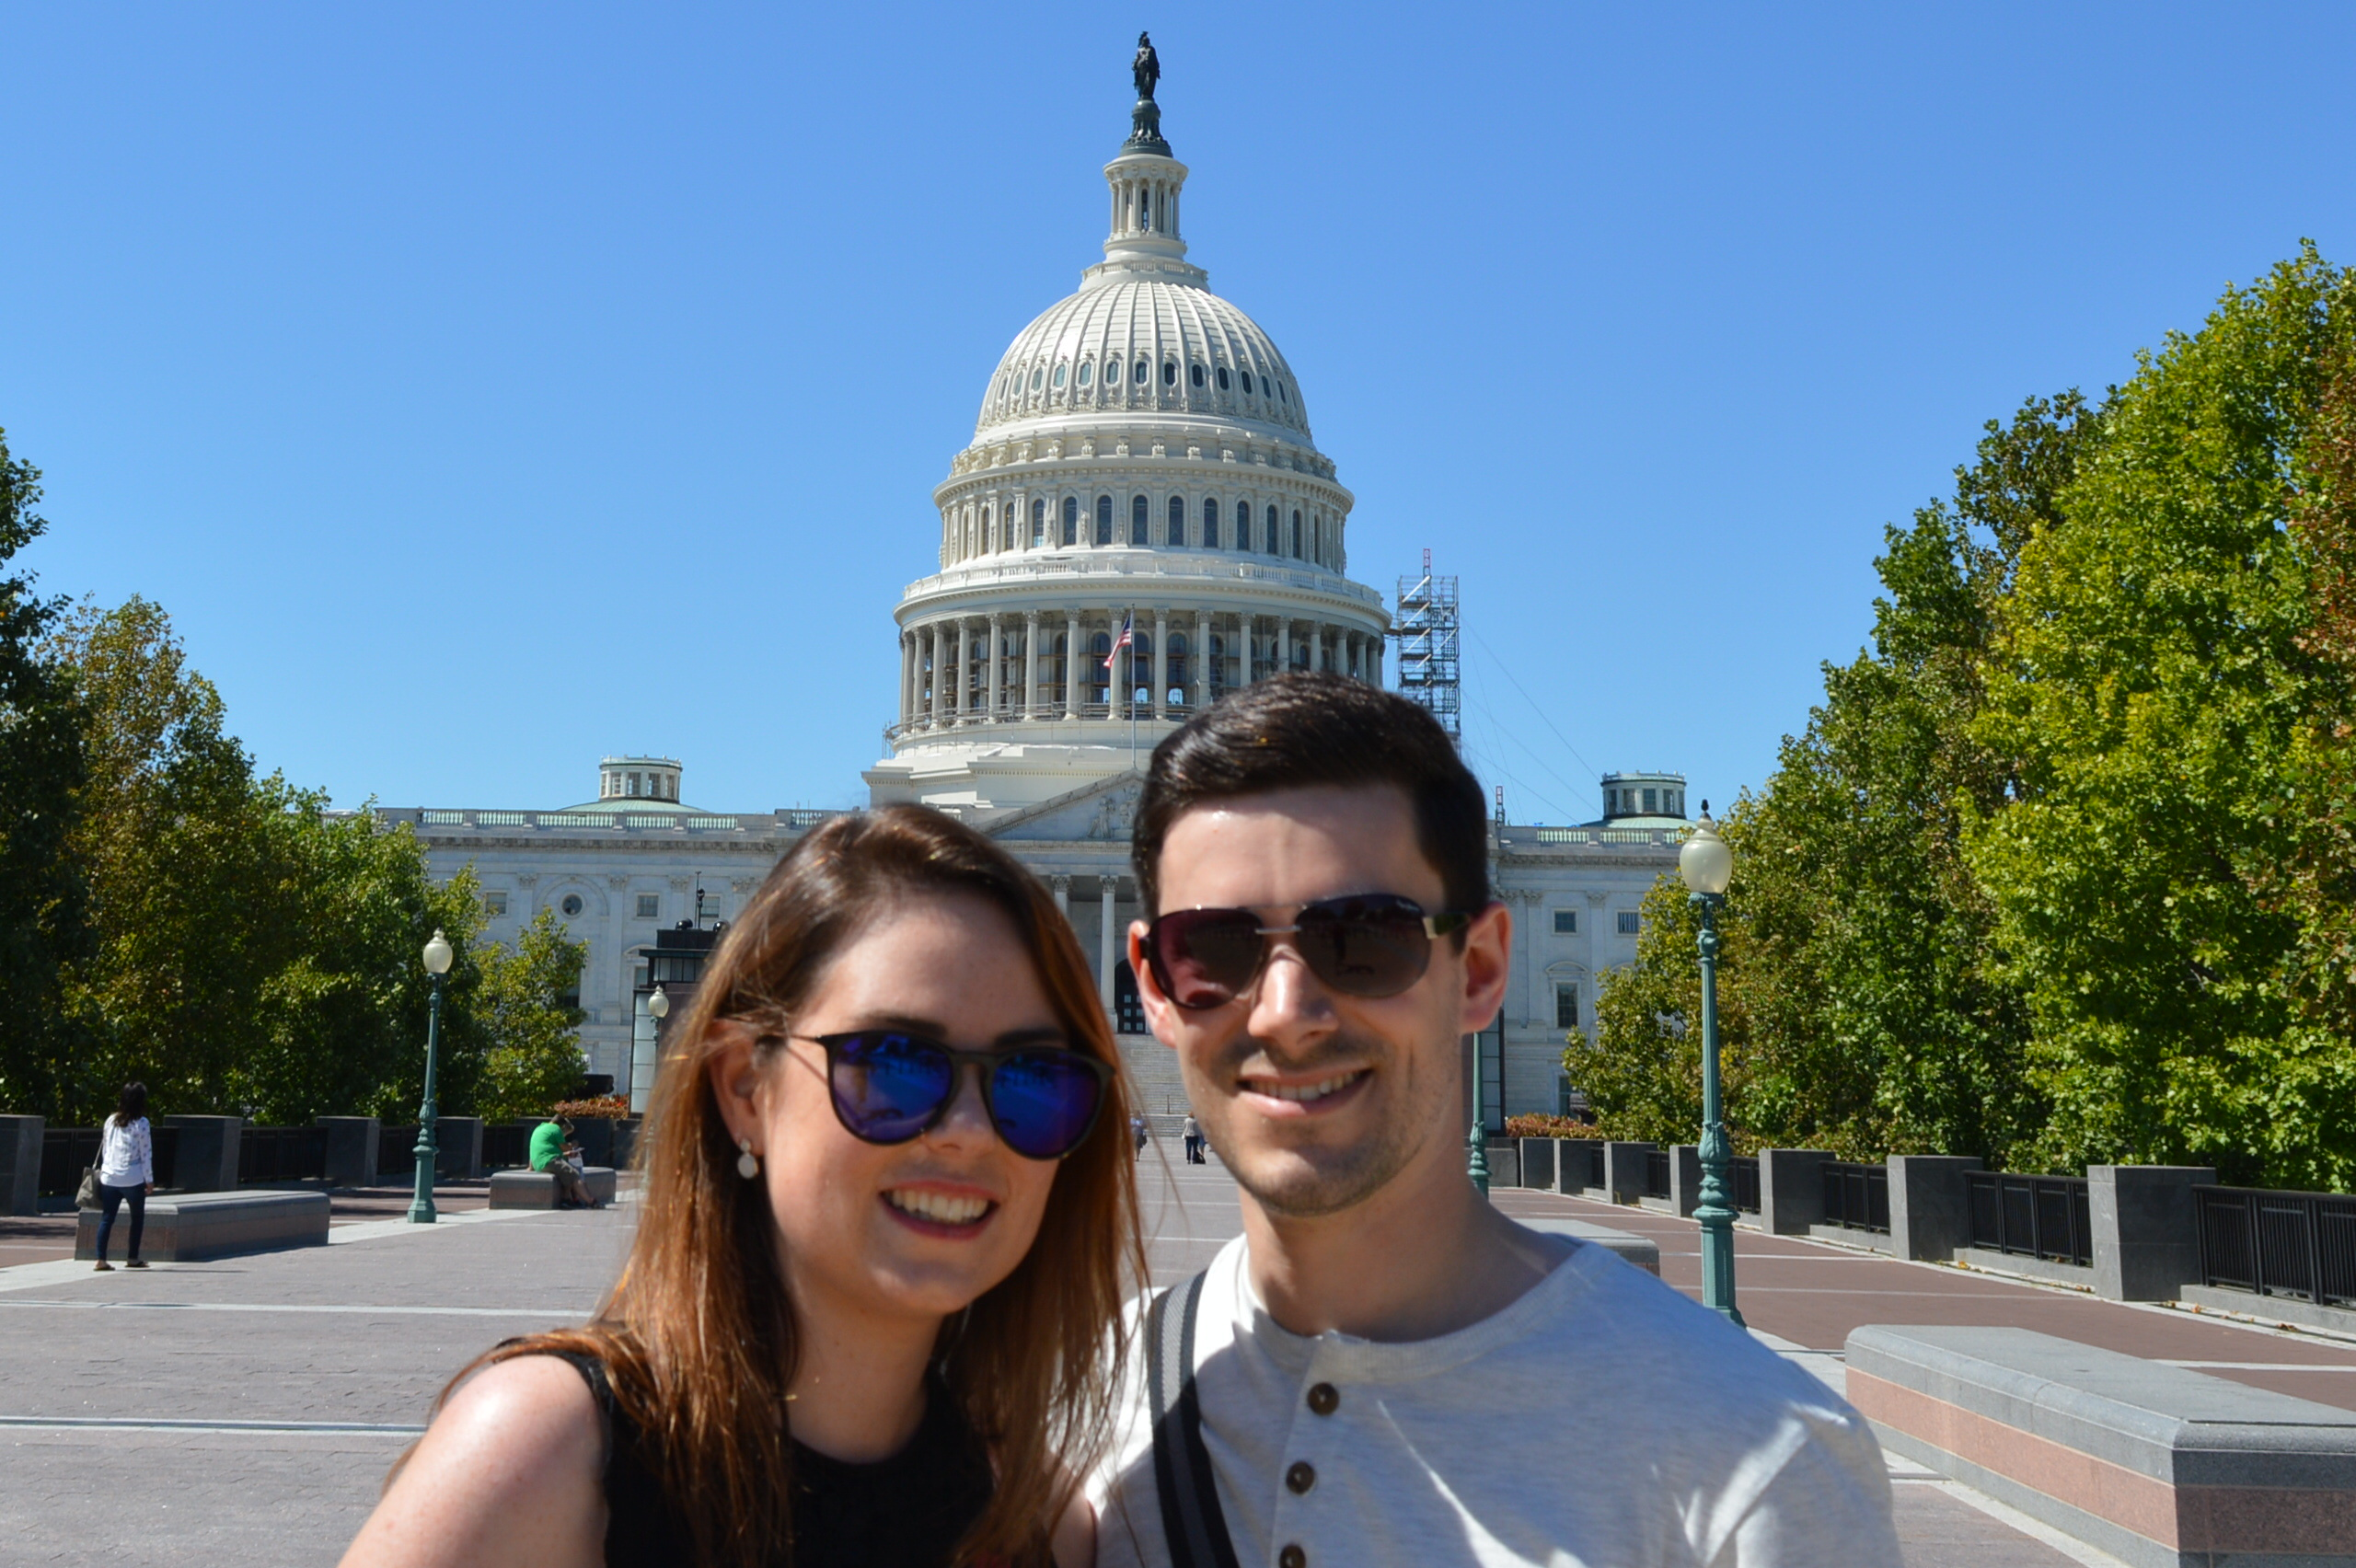 Visiting the US Capitol